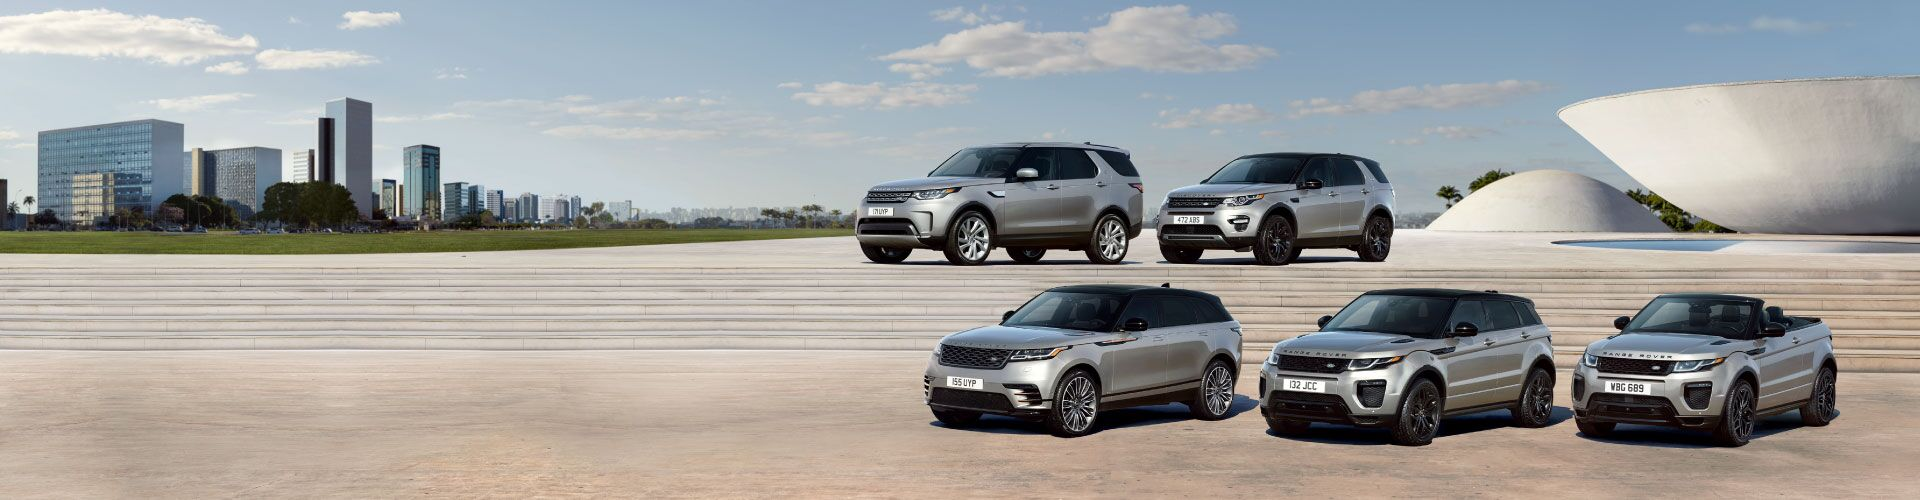 2018 Land Rover Inventory Offer